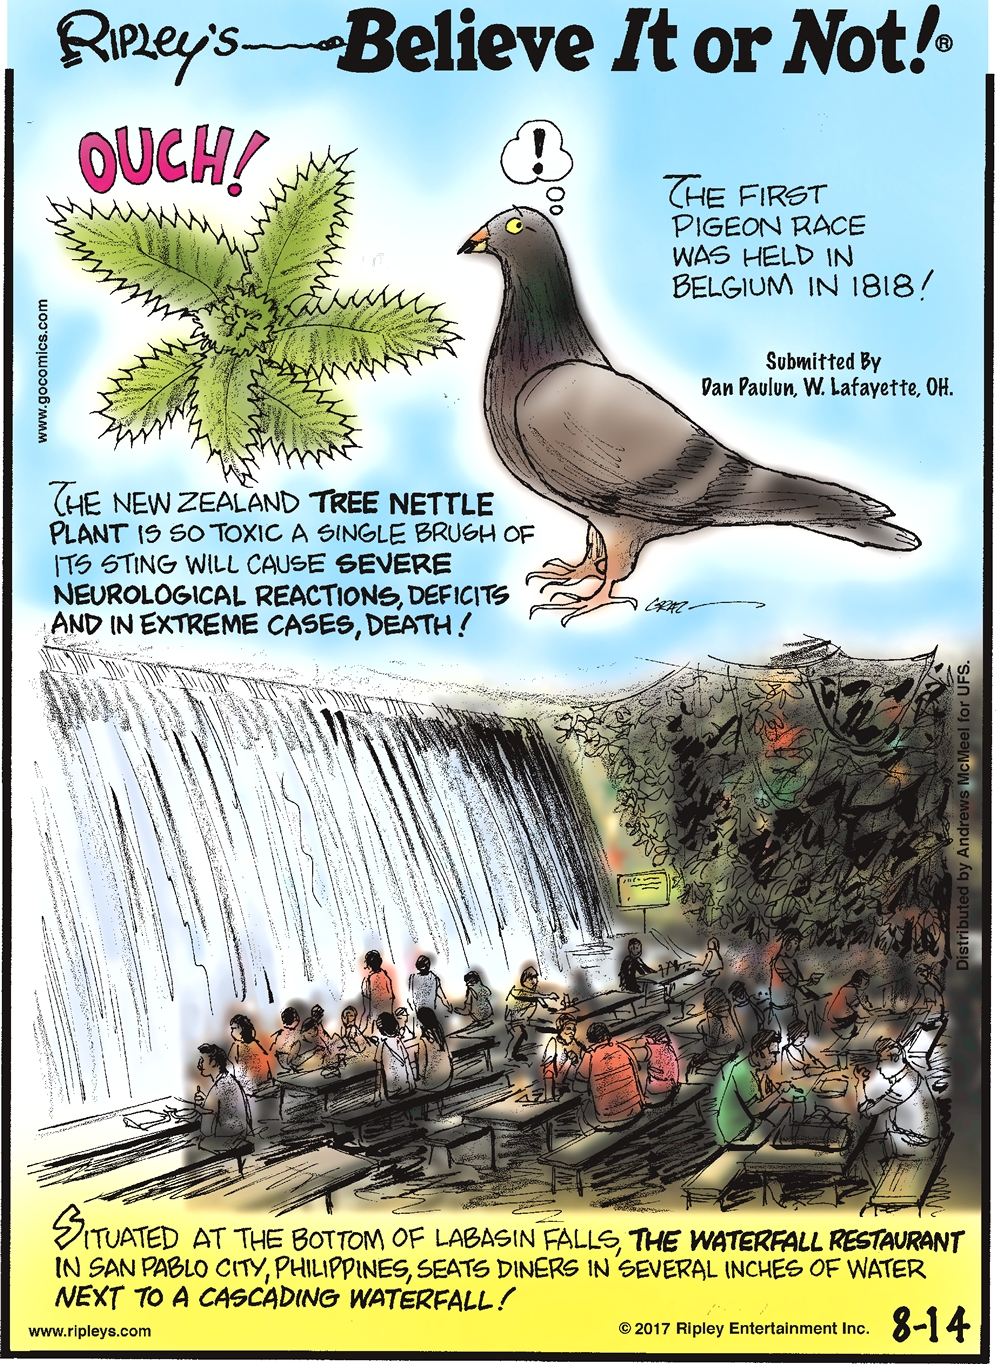 The New Zealand Tree Nettle Plant is so toxic a single brush of its sting will cause severe neurological reactions, deficits and in extreme cases, death!-------------------- The first pigeon race was held in Belgium in 1818! Submitted by Dan Paulun, W. Lafayette, OH.-------------------- Situated at the bottom of Labasin Falls, The Waterfall Restaurant in San Pablo City, Philippines, seats diners in several inches of water next to a cascading waterfall!